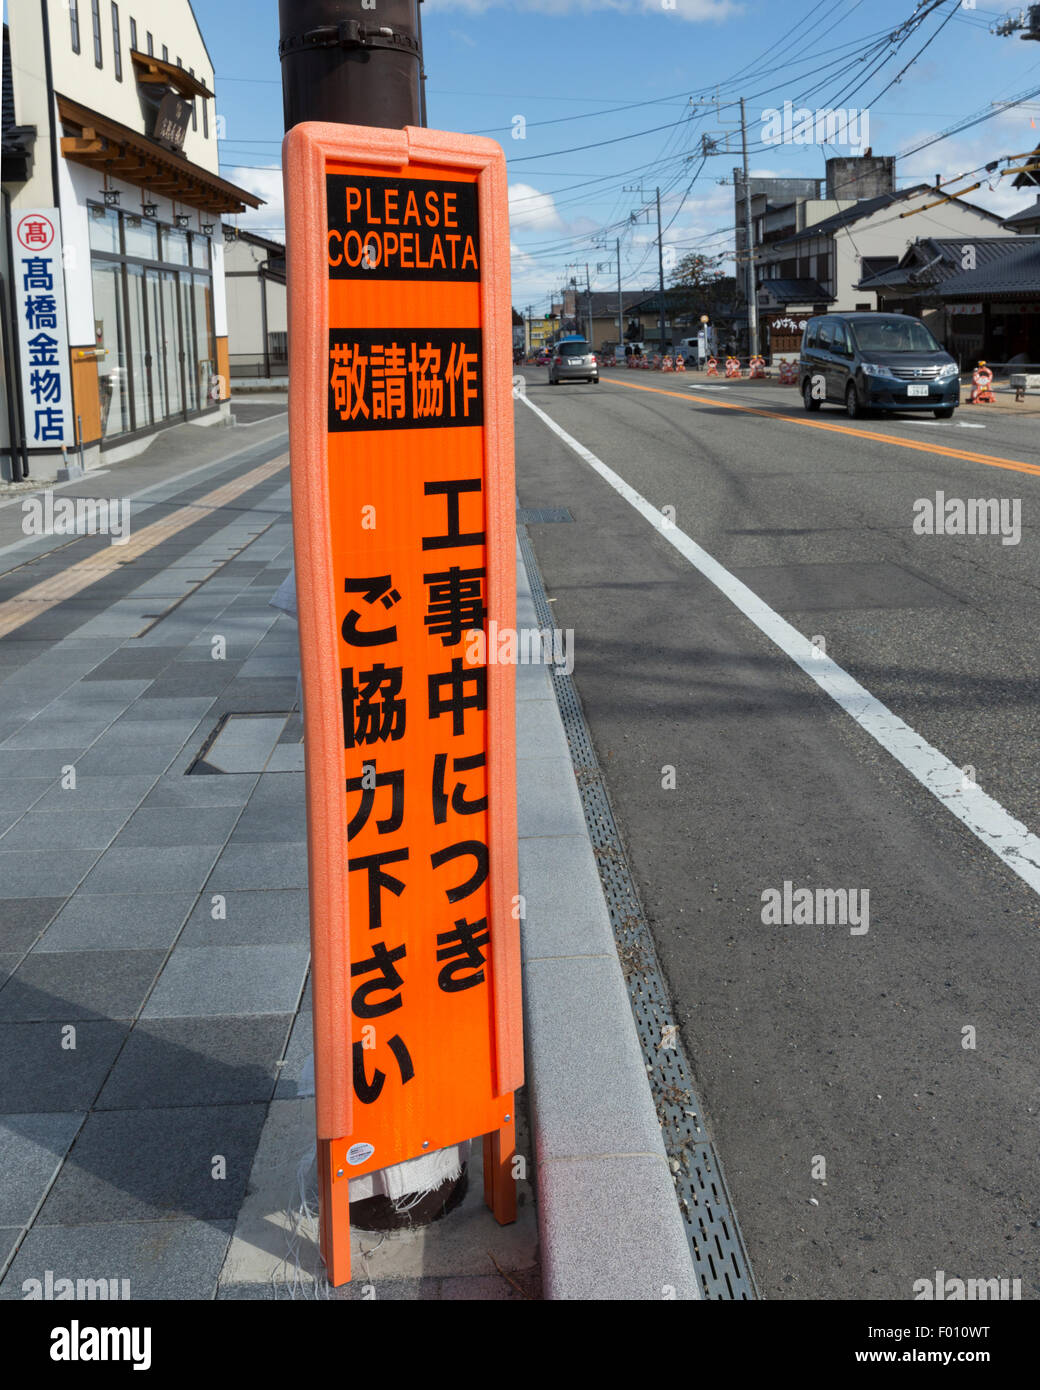 Road sign in Nikko Japan with amusing 'Please Coopelata' English translation - Stock Image